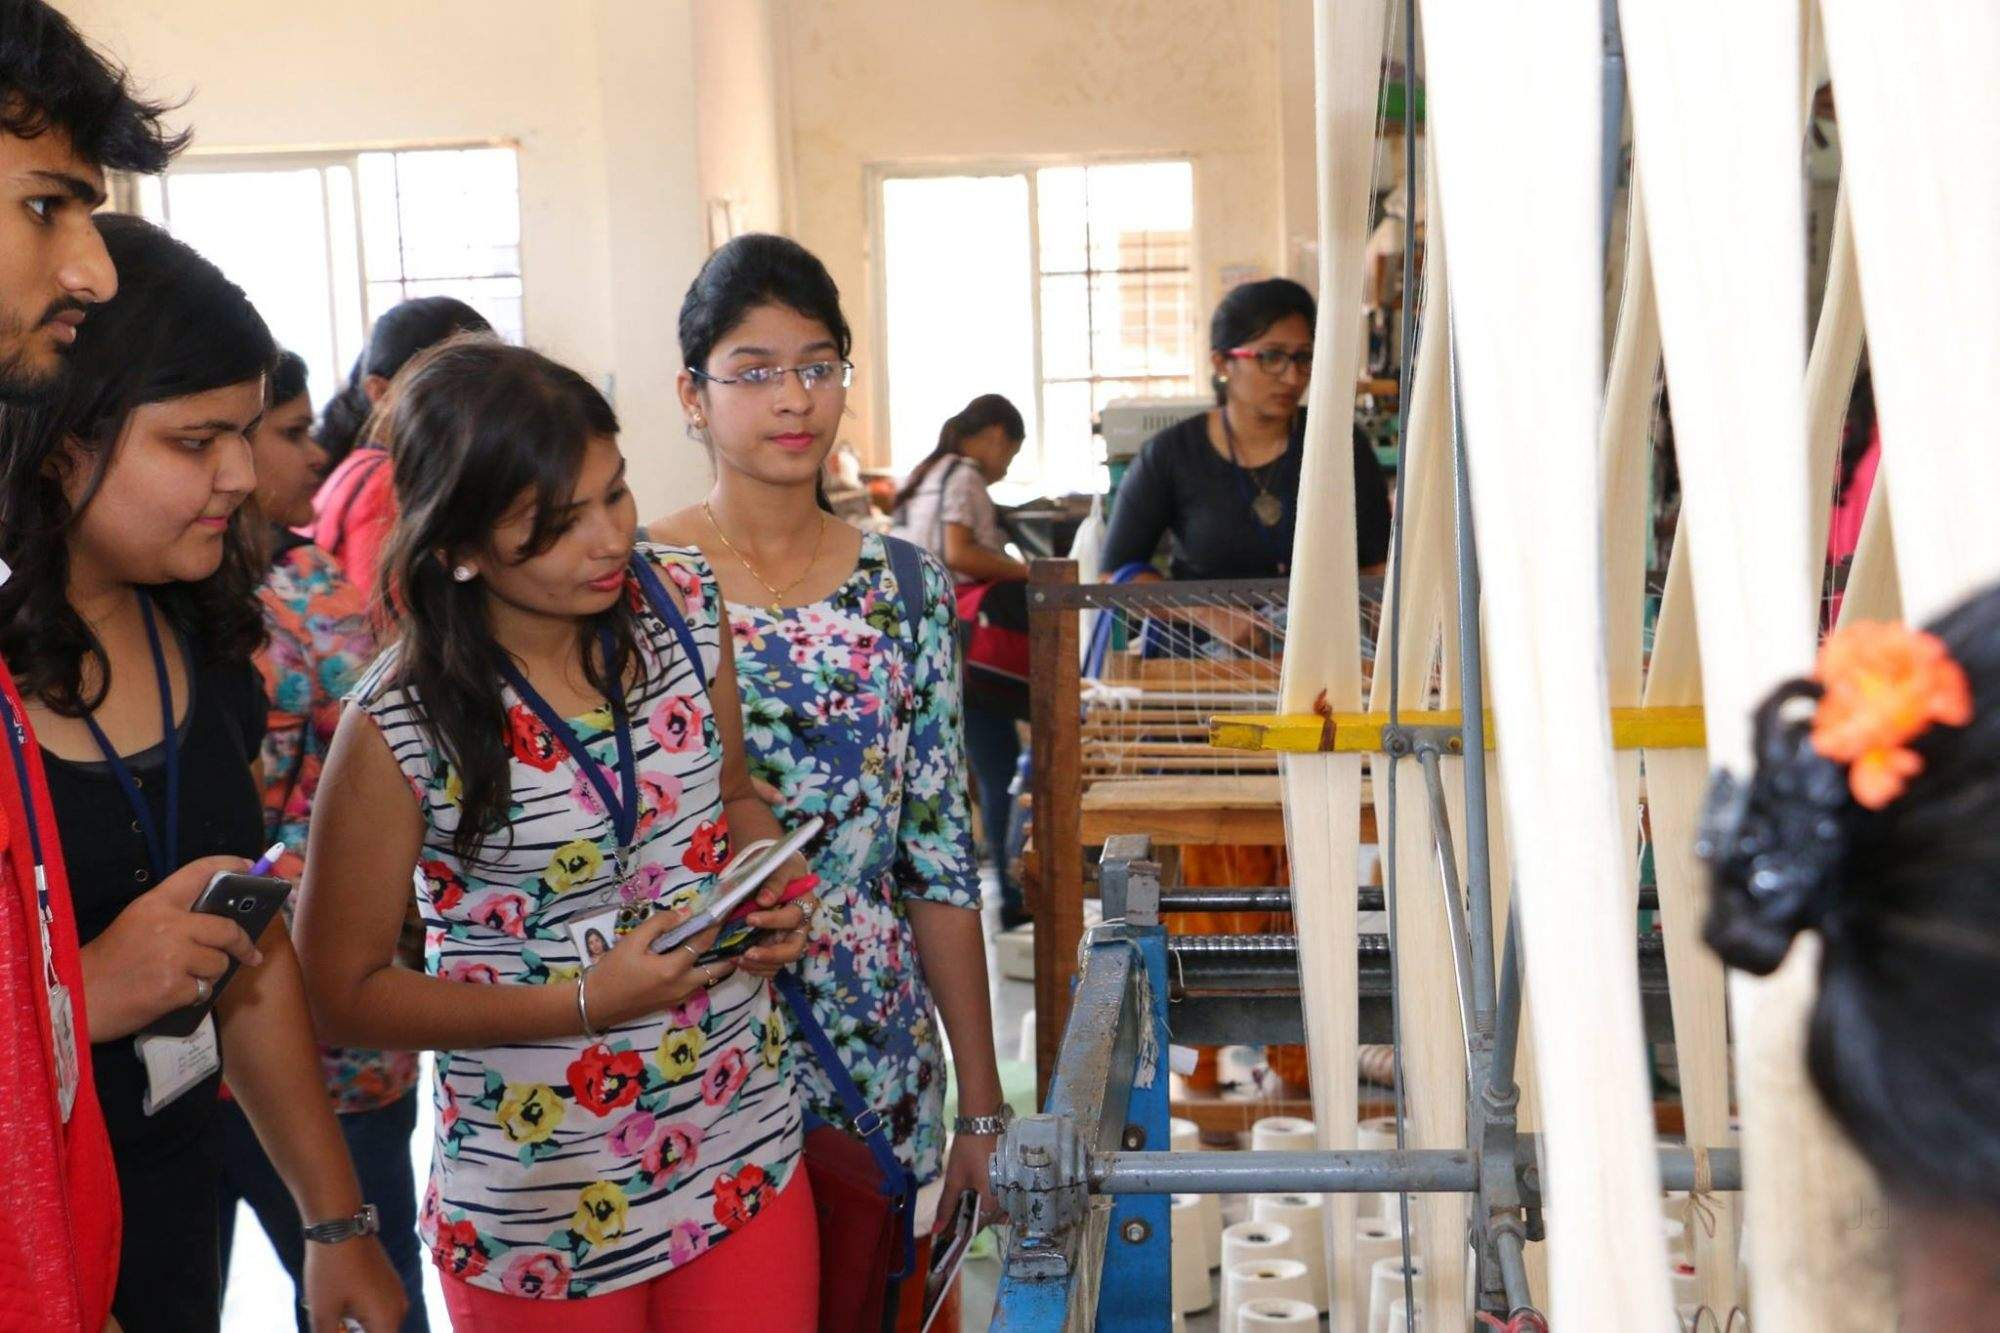 Top 100 Fashion Designing Institutes In Hs Darga Shaikpet Best Fashion Designing Colleges Hs Darga Shaikpet Hyderabad Justdial